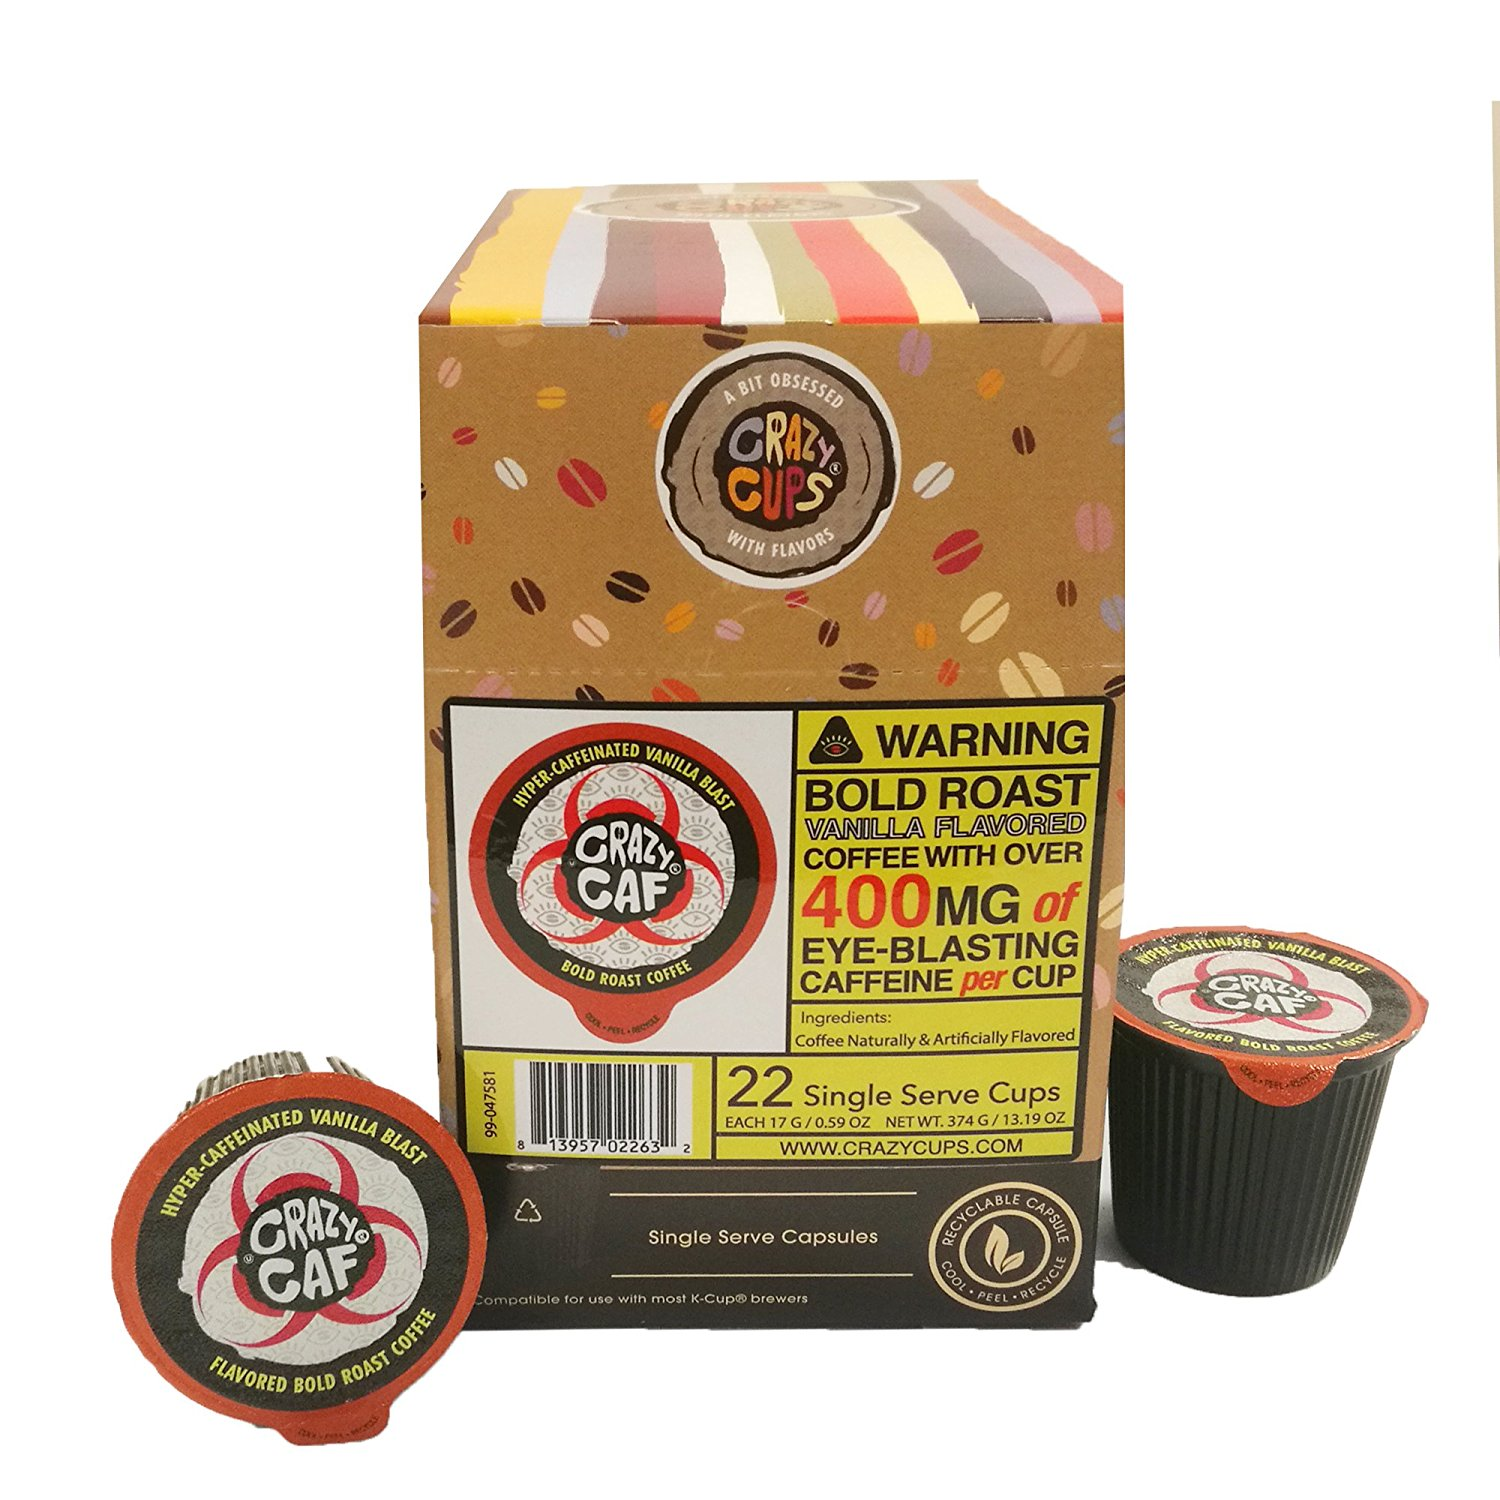 Crazy-Cups-Crazy-Caf-Extra-Caffeinated-Coffee-Cups-for-Keurig-K-Cup-22-Count thumbnail 6